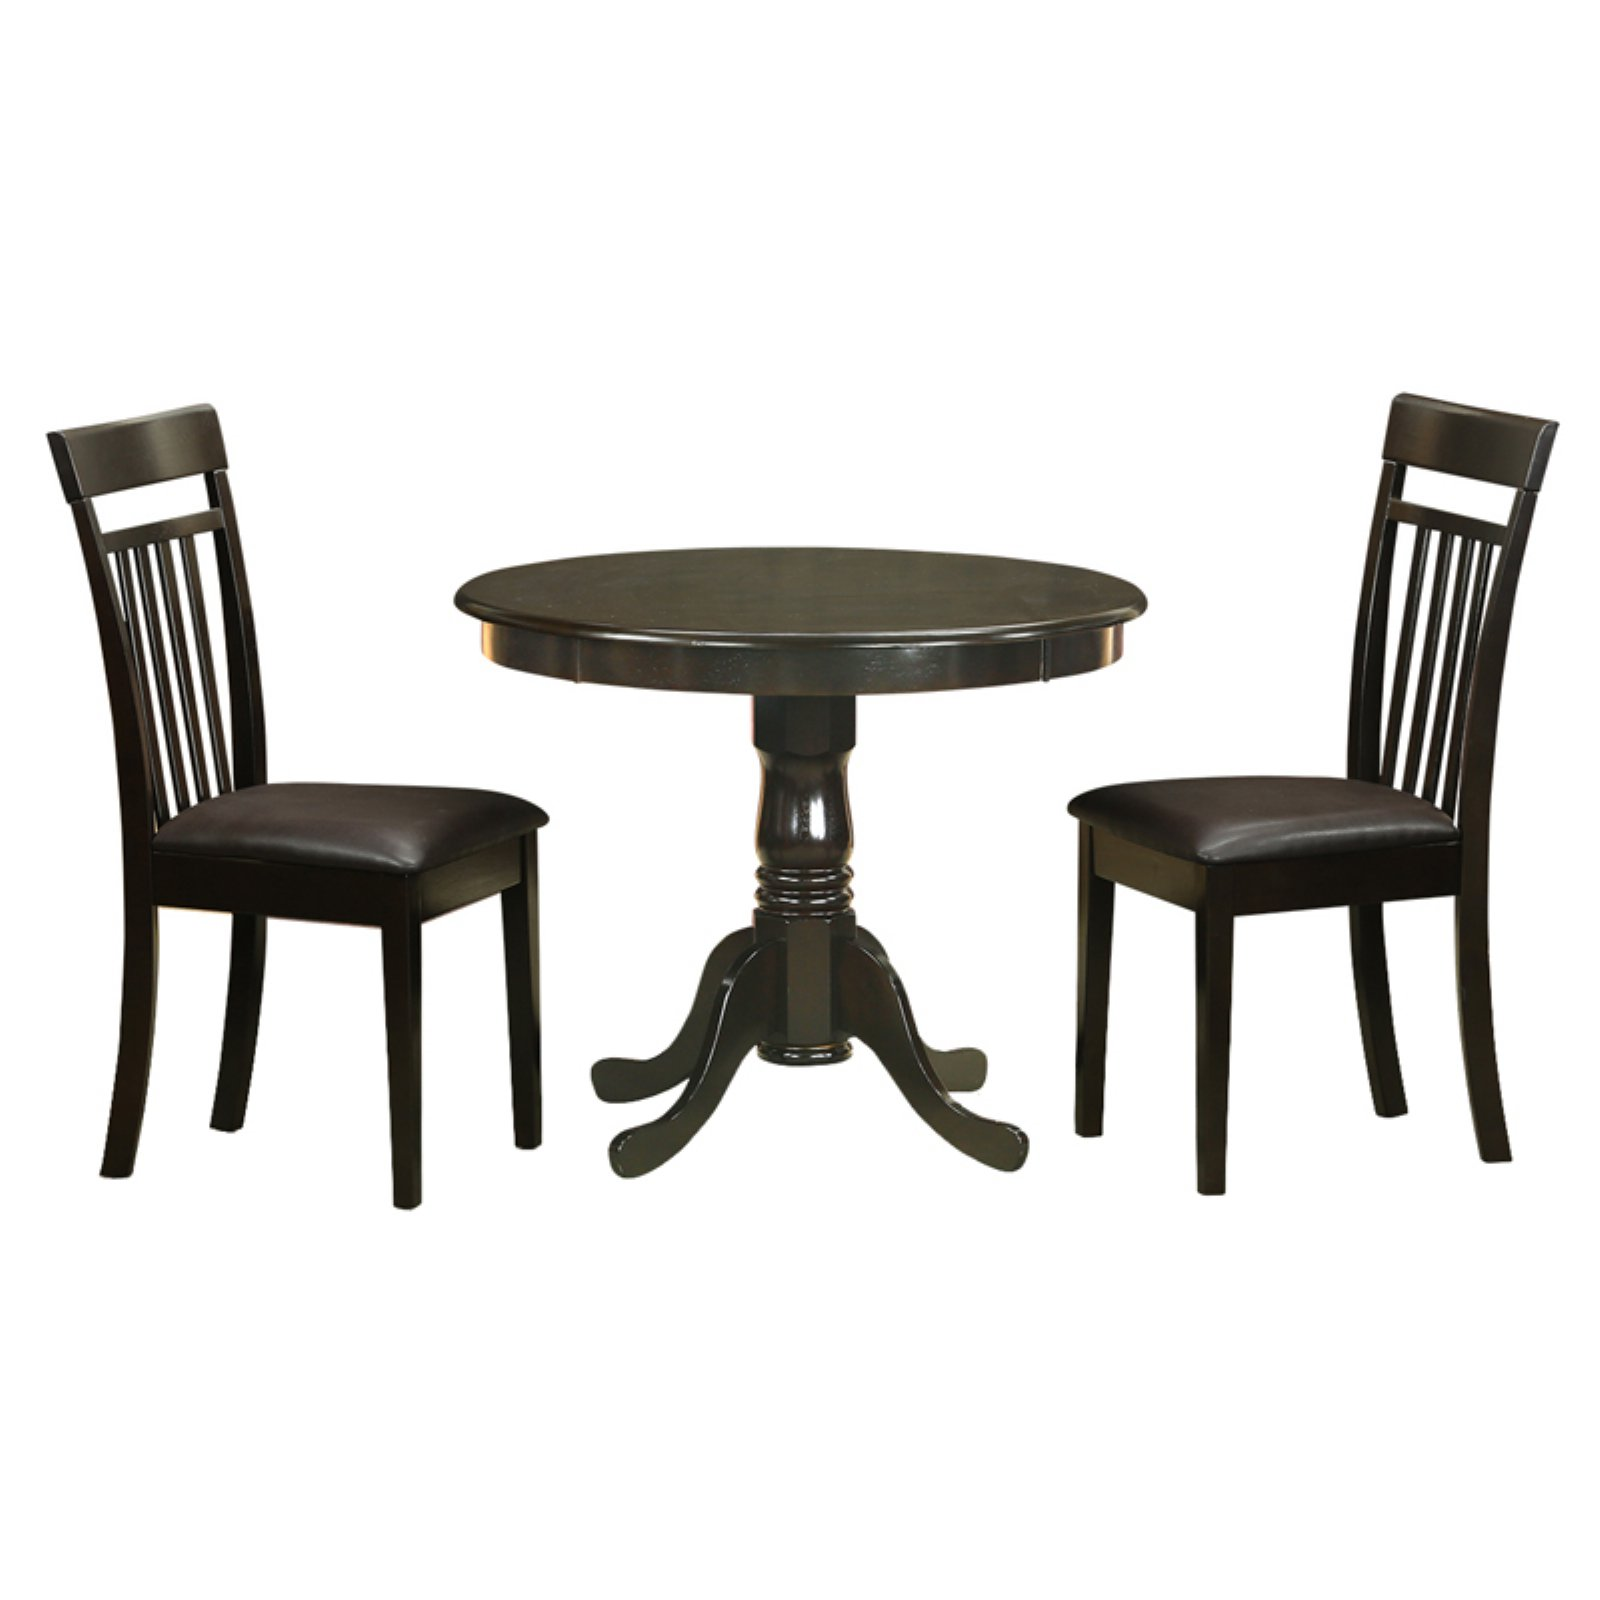 East West Furniture Antique 3 Piece Pedestal Round Dining Table Set with Capri Microfiber Seat Chairs